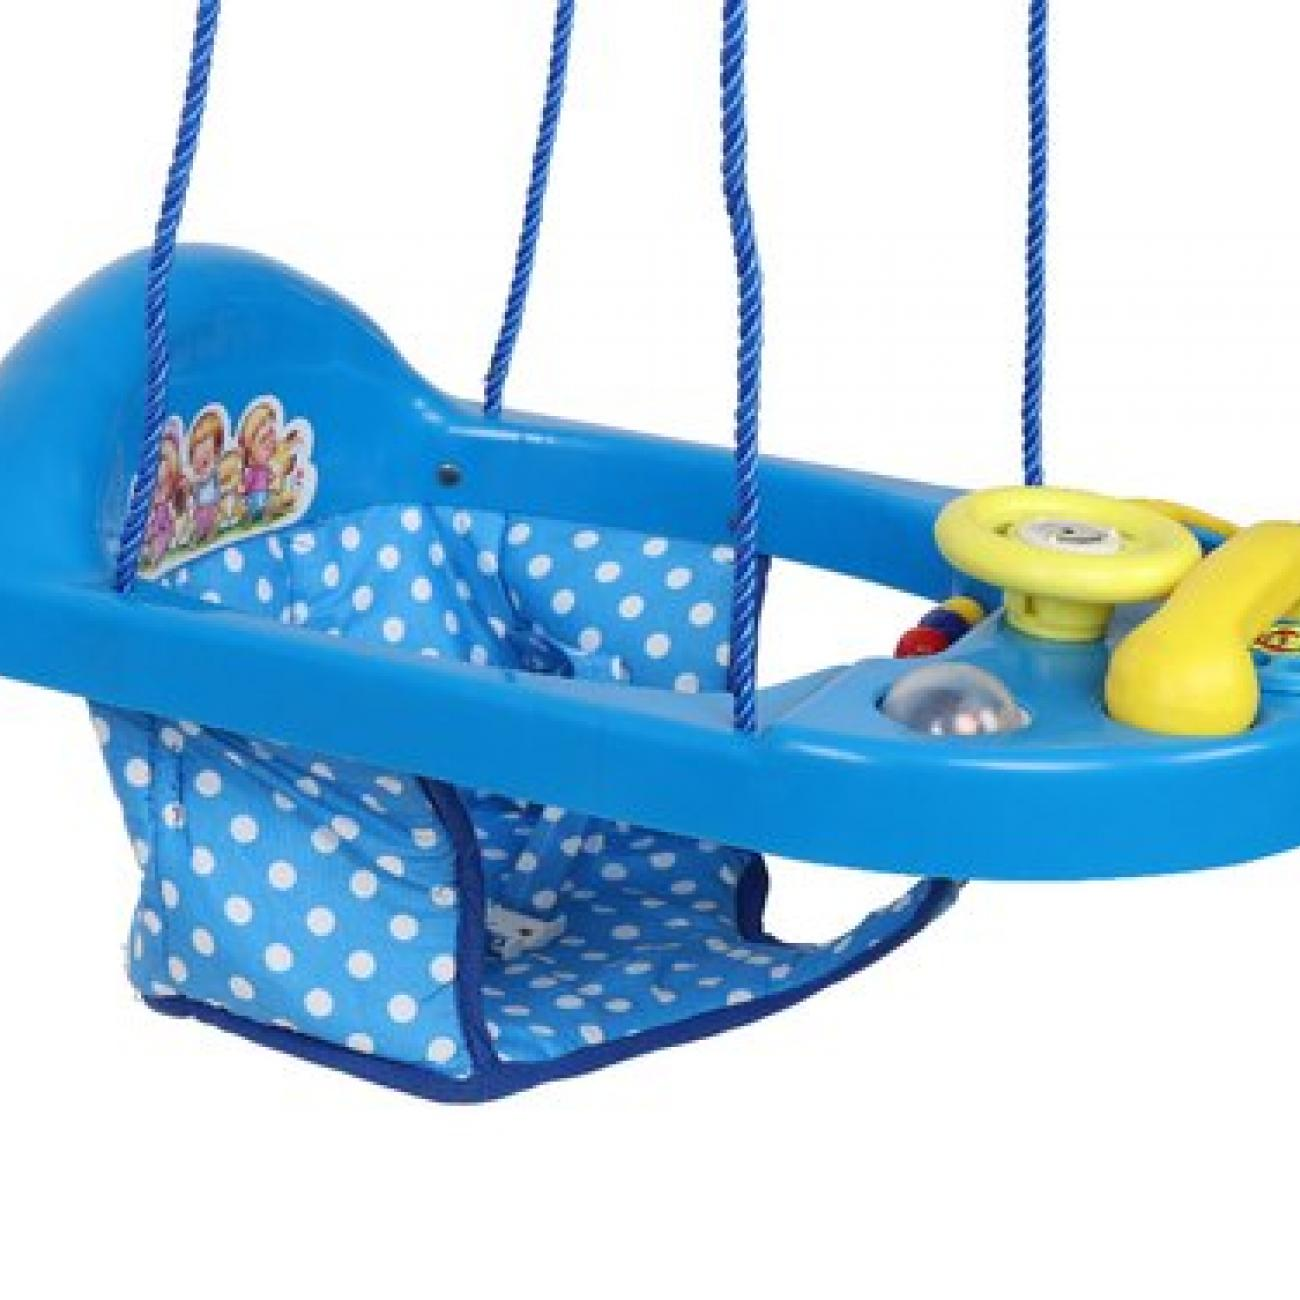 Activity Baby swings